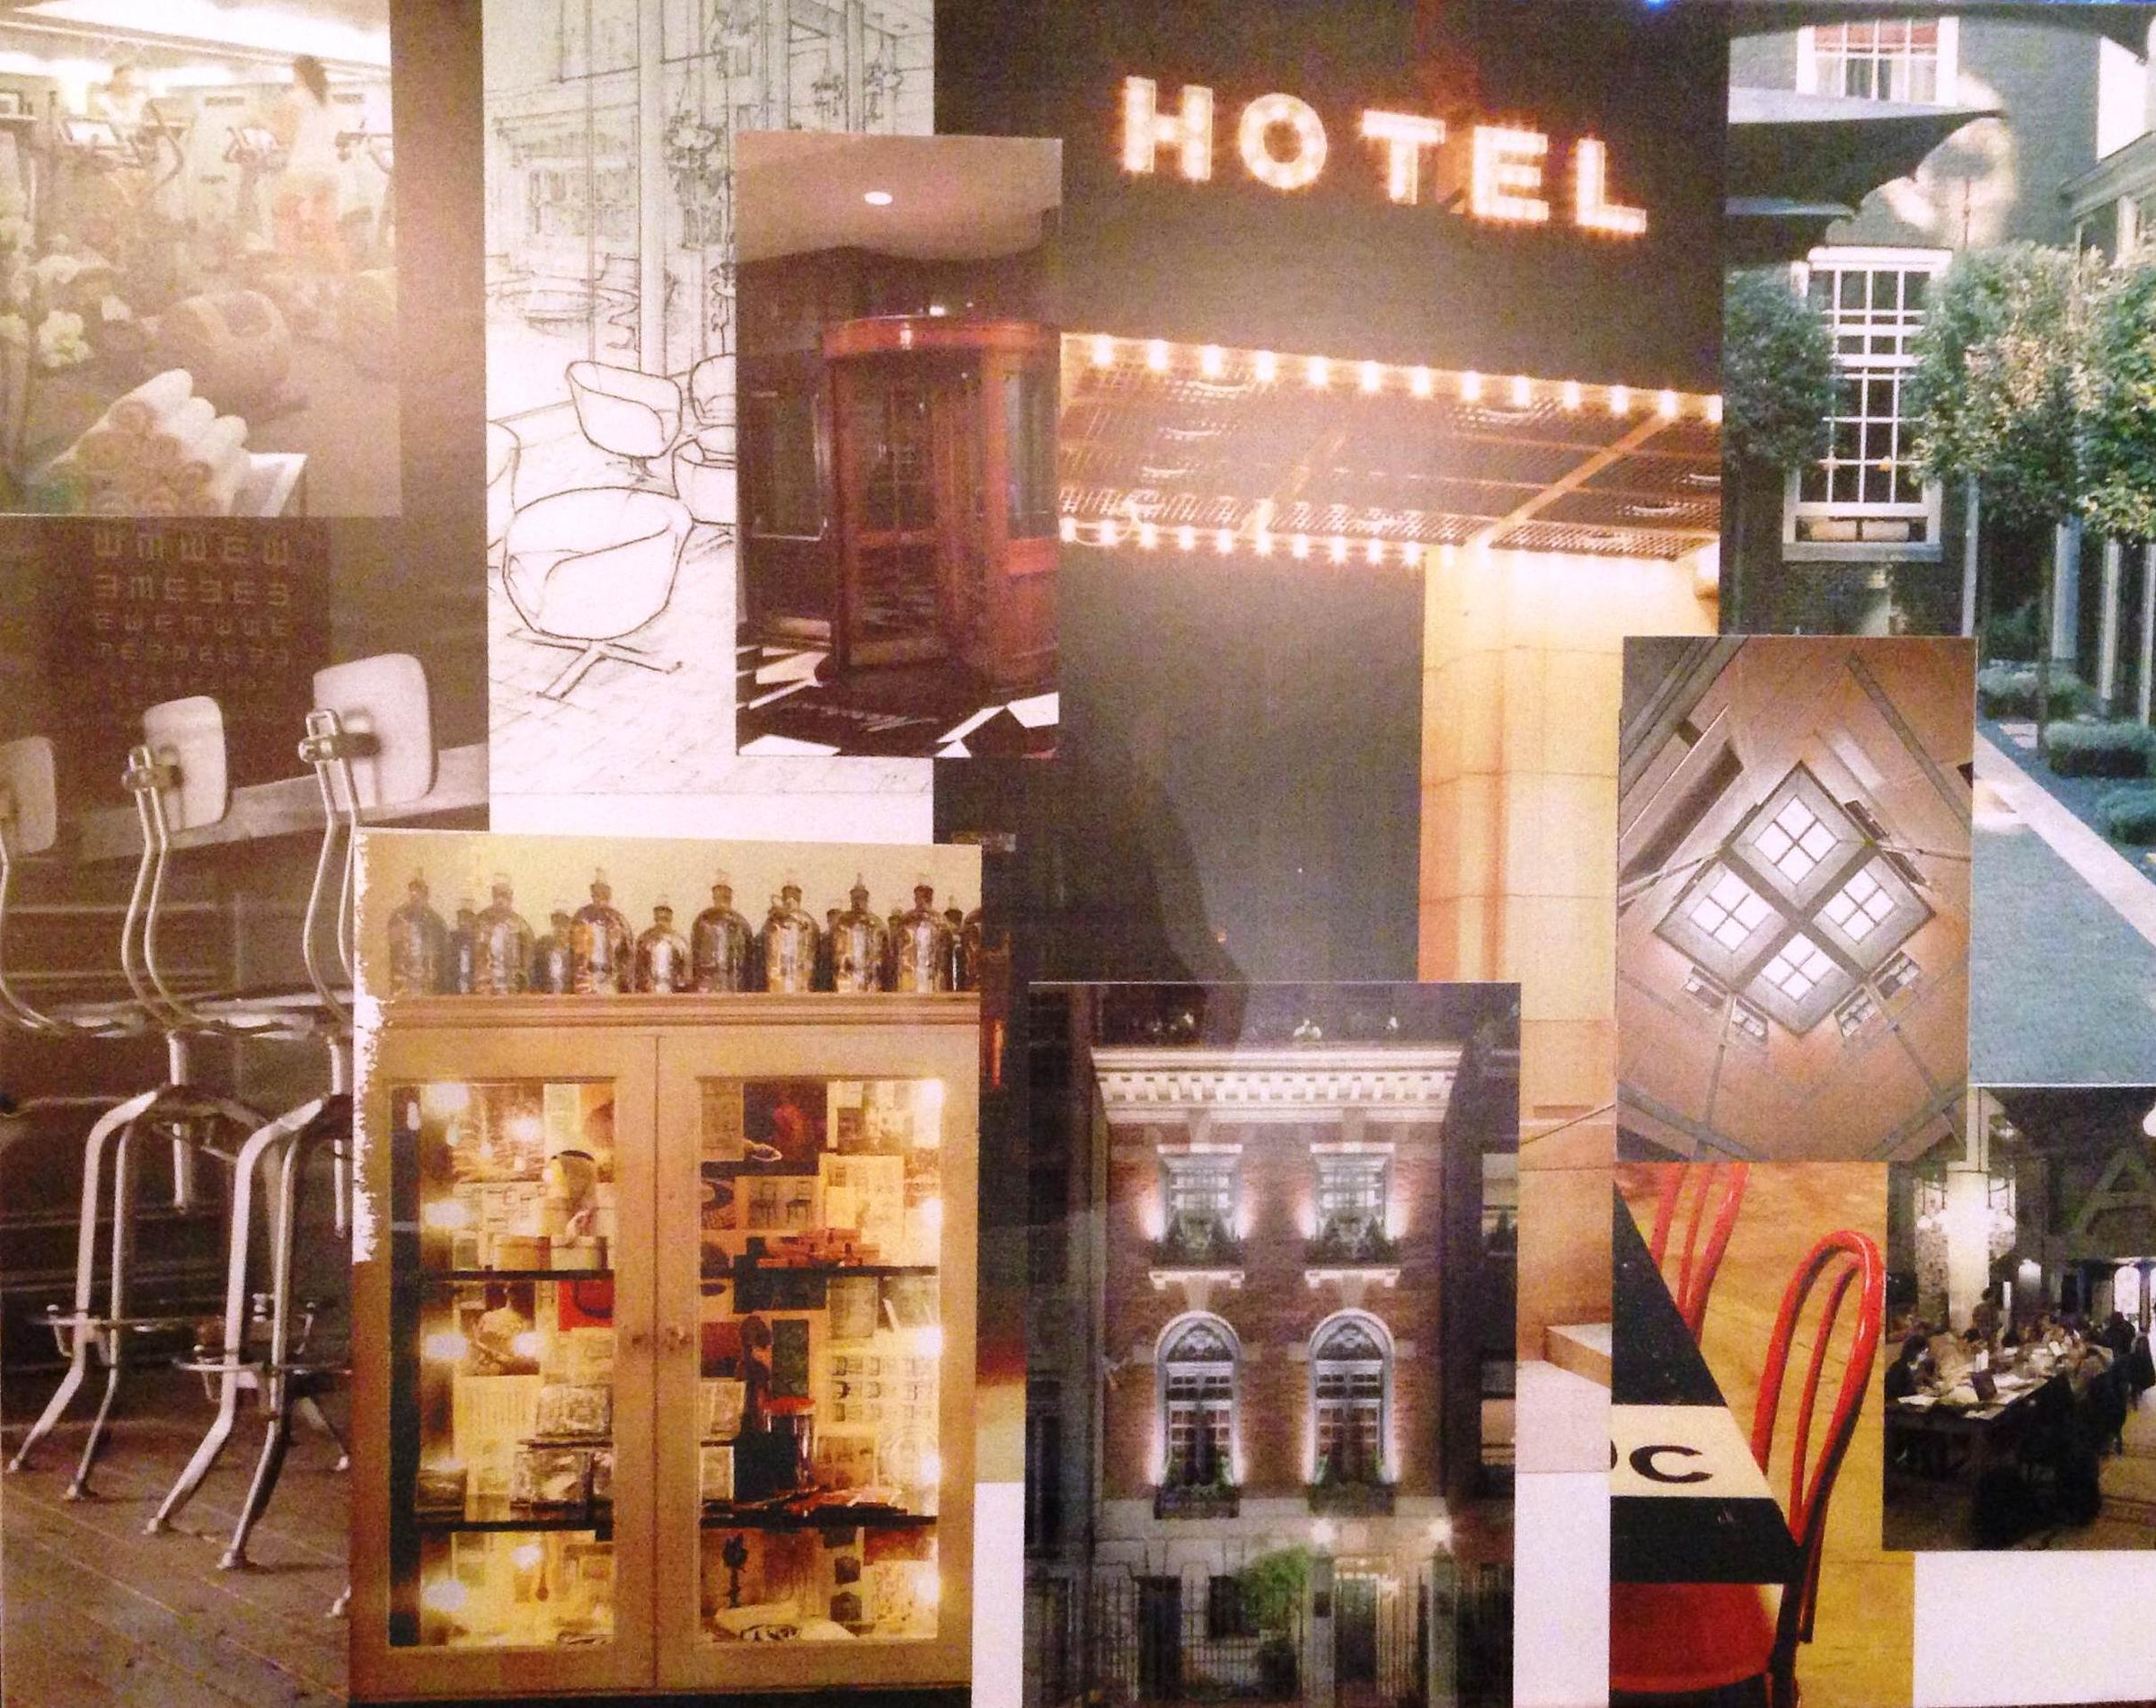 Downtown boutique hotel proposed for pittsfield wamc for Boutique hotel group